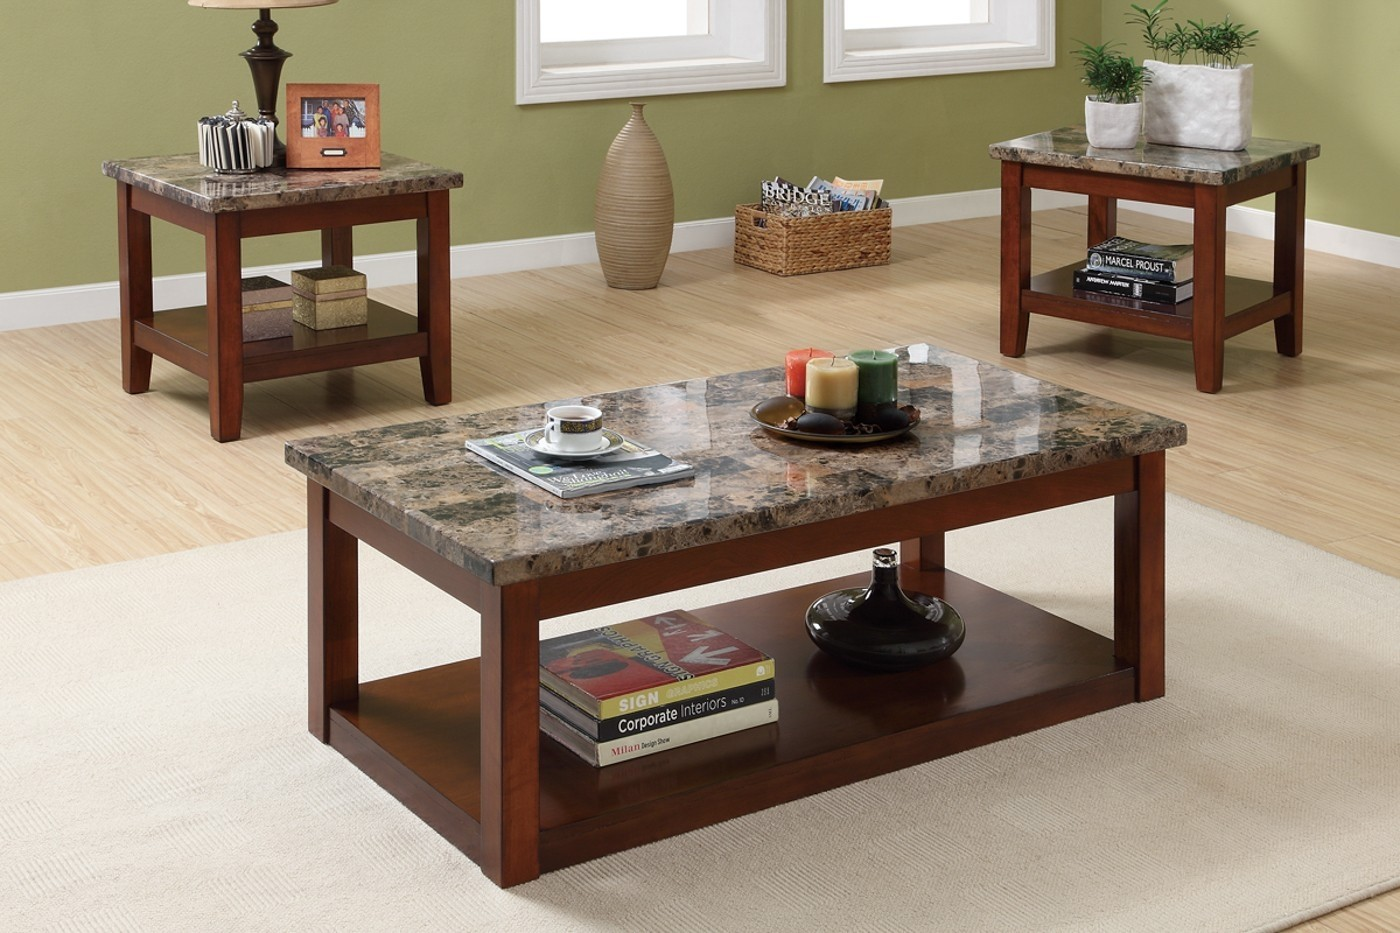 3pc Coffee Table and End Tables Set with Marble Top & Granite Top Coffee Table - Foter